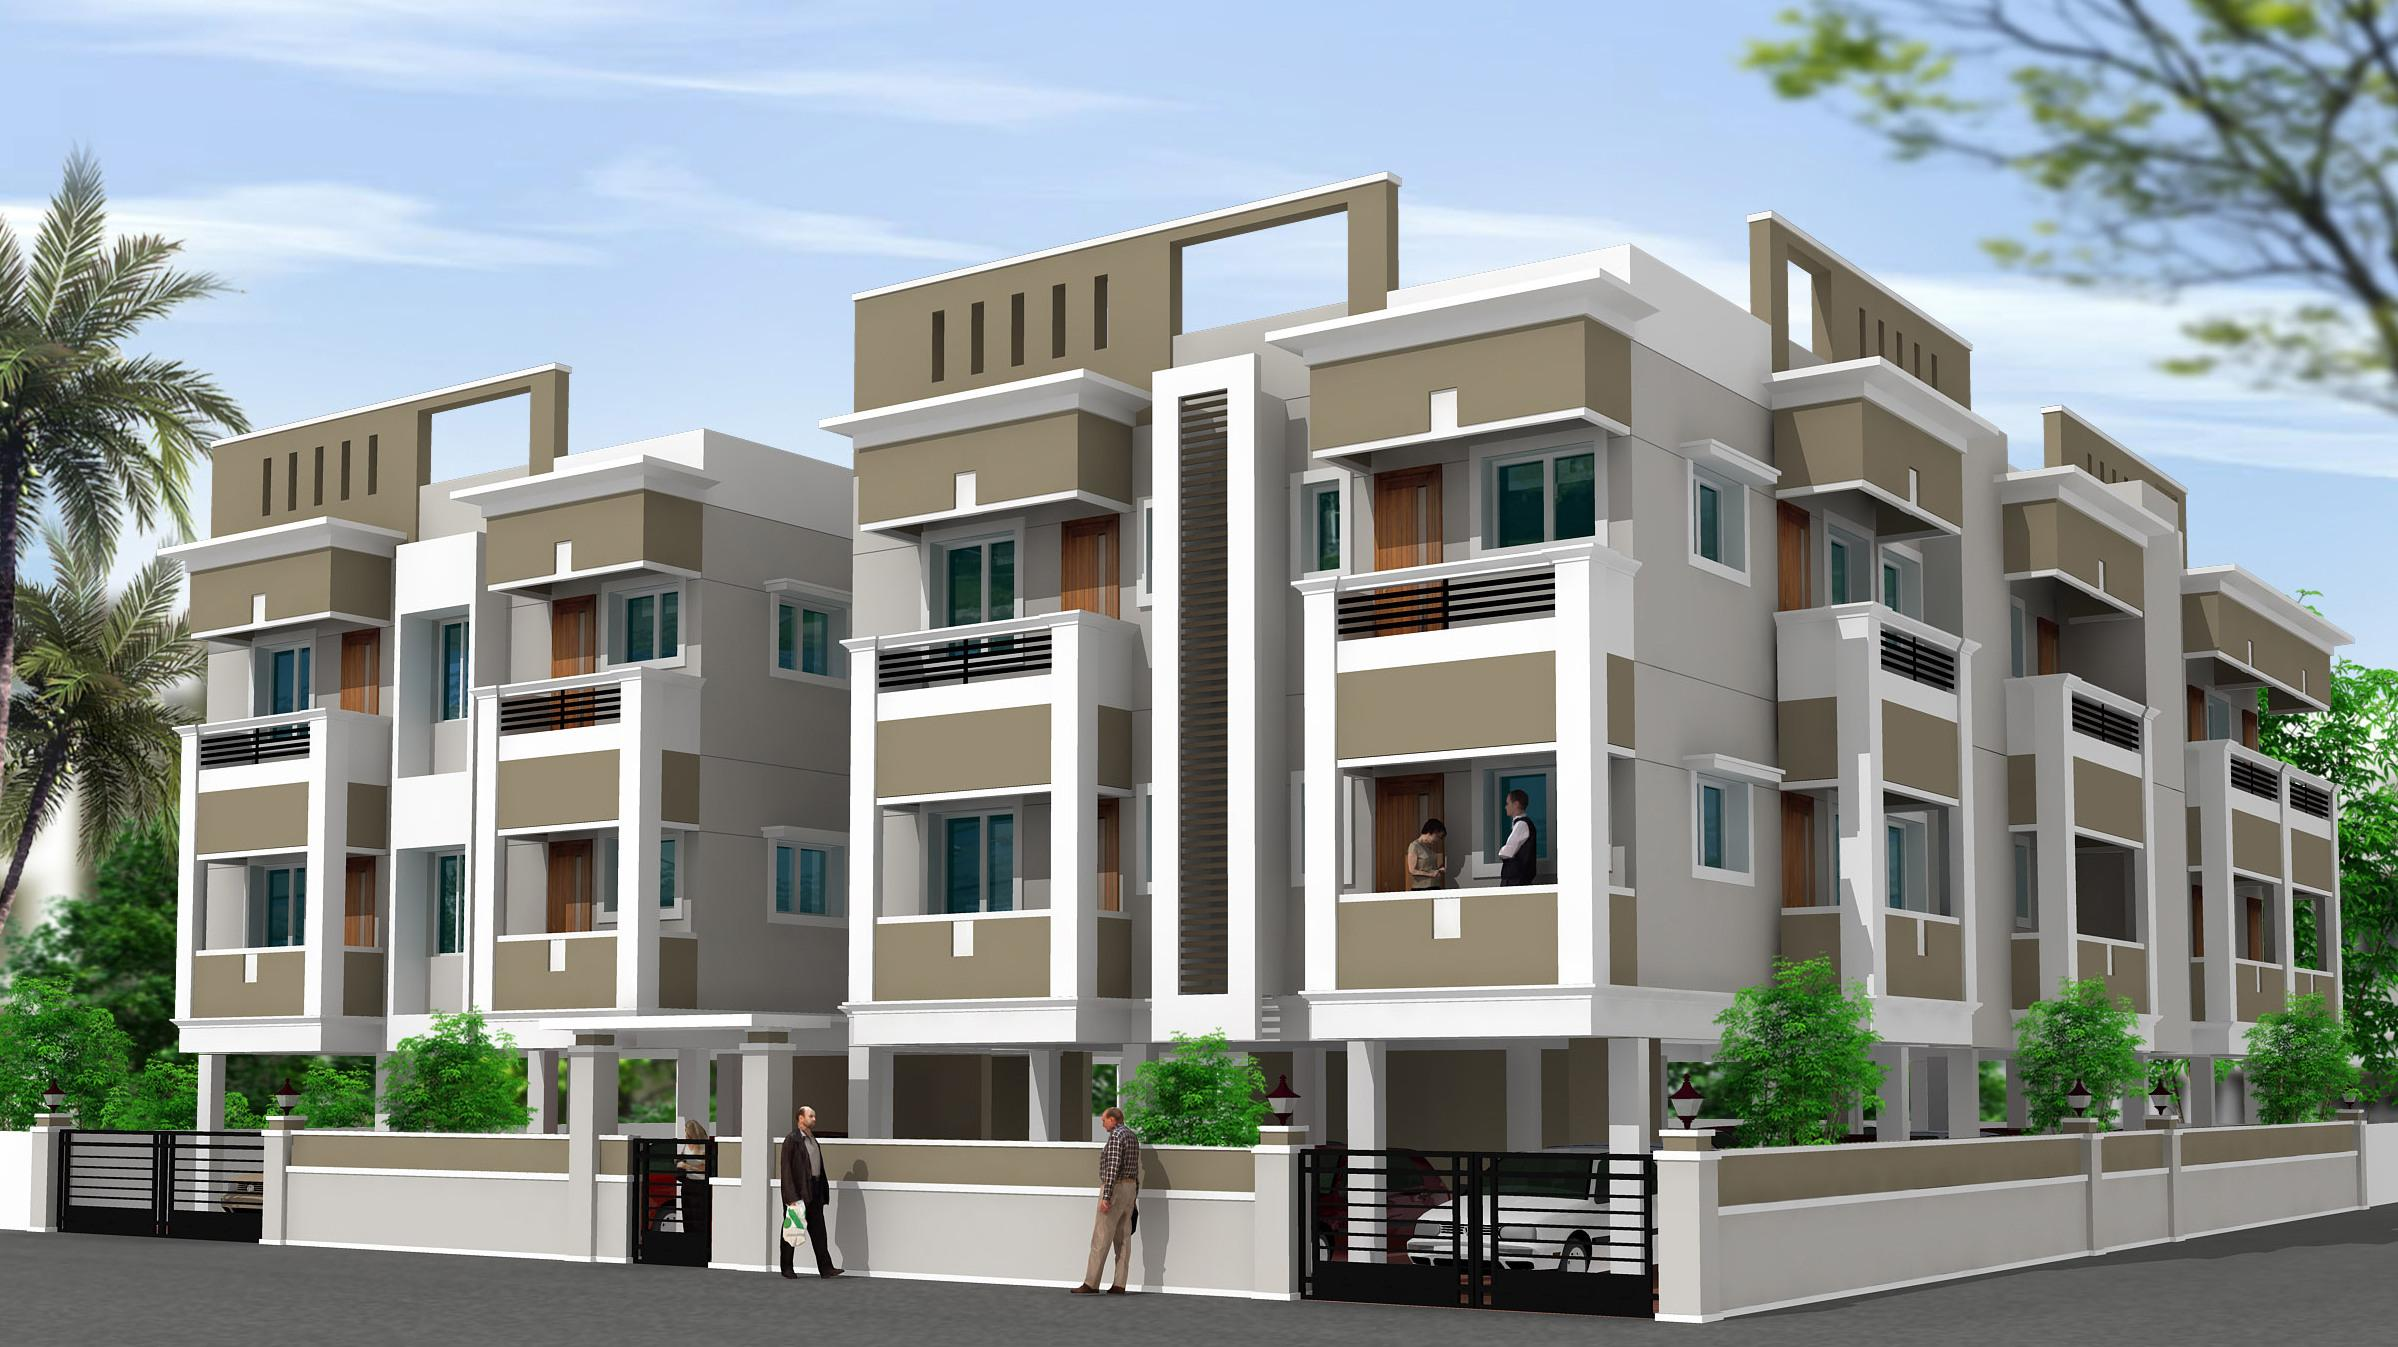 Residential building elevation design with detailing for Contemporary building elevation